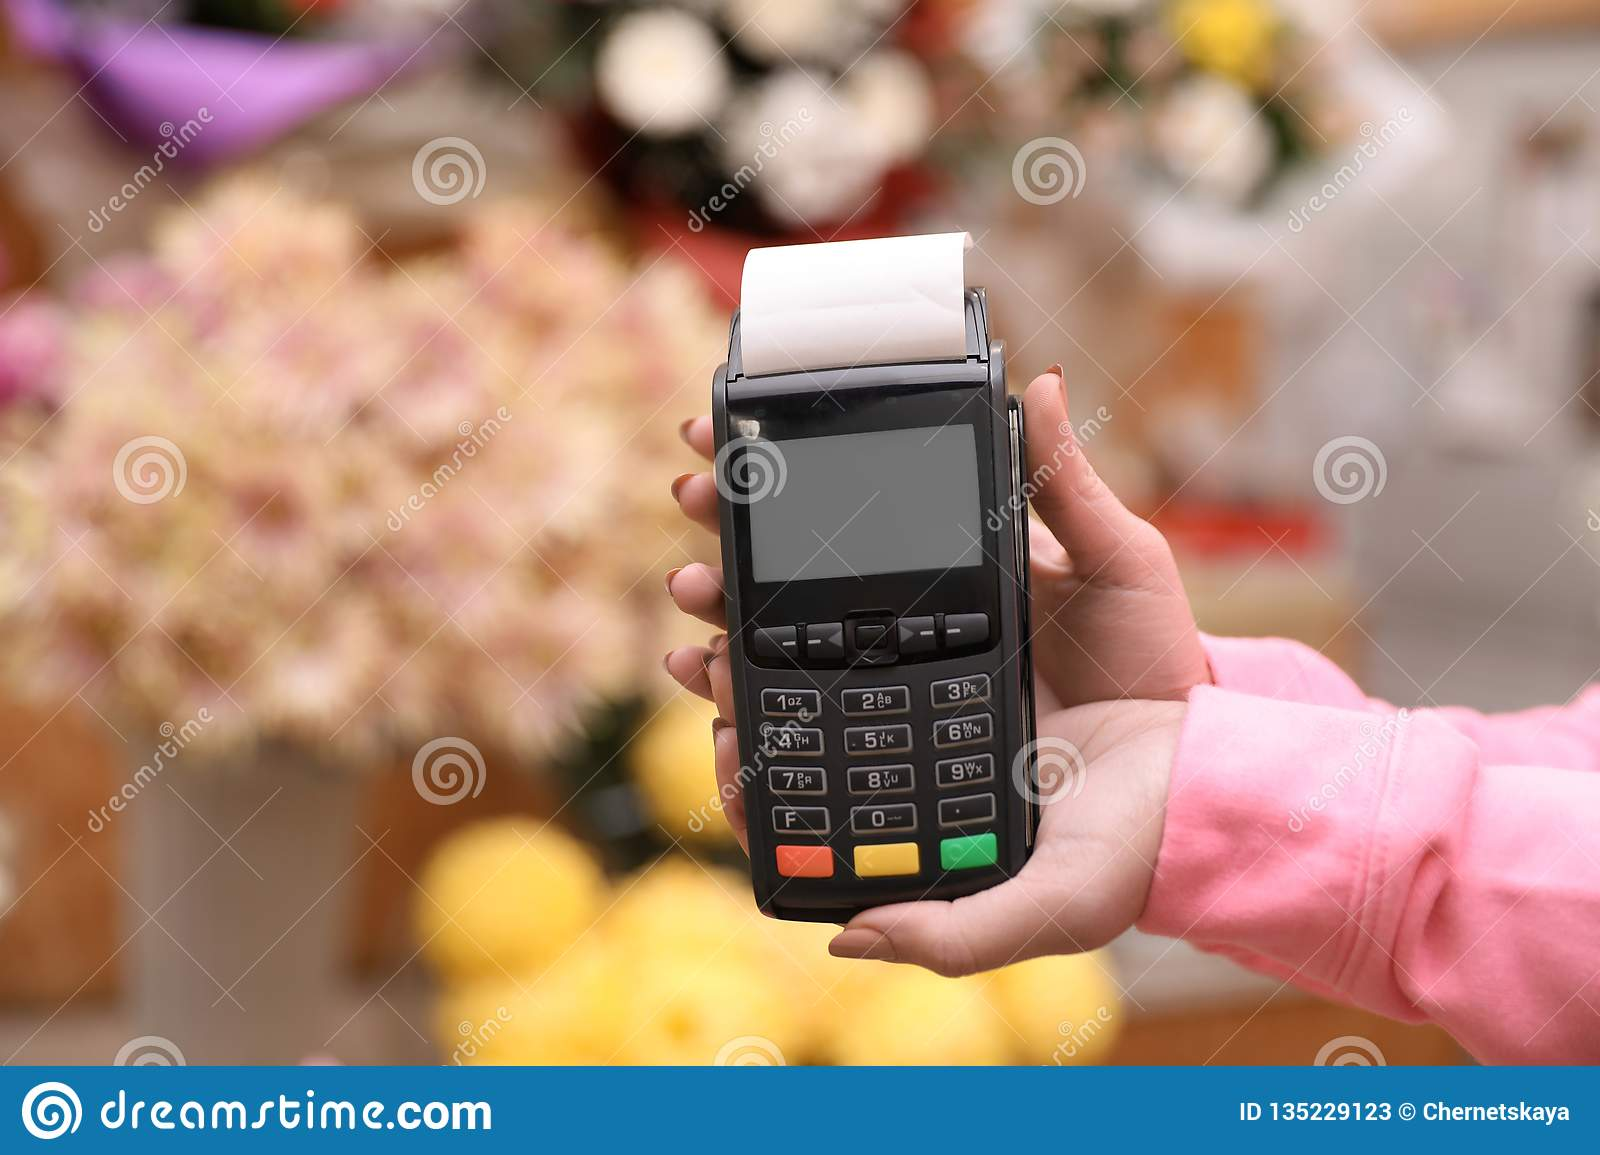 Woman holding payment terminal in floral shop, closeup.